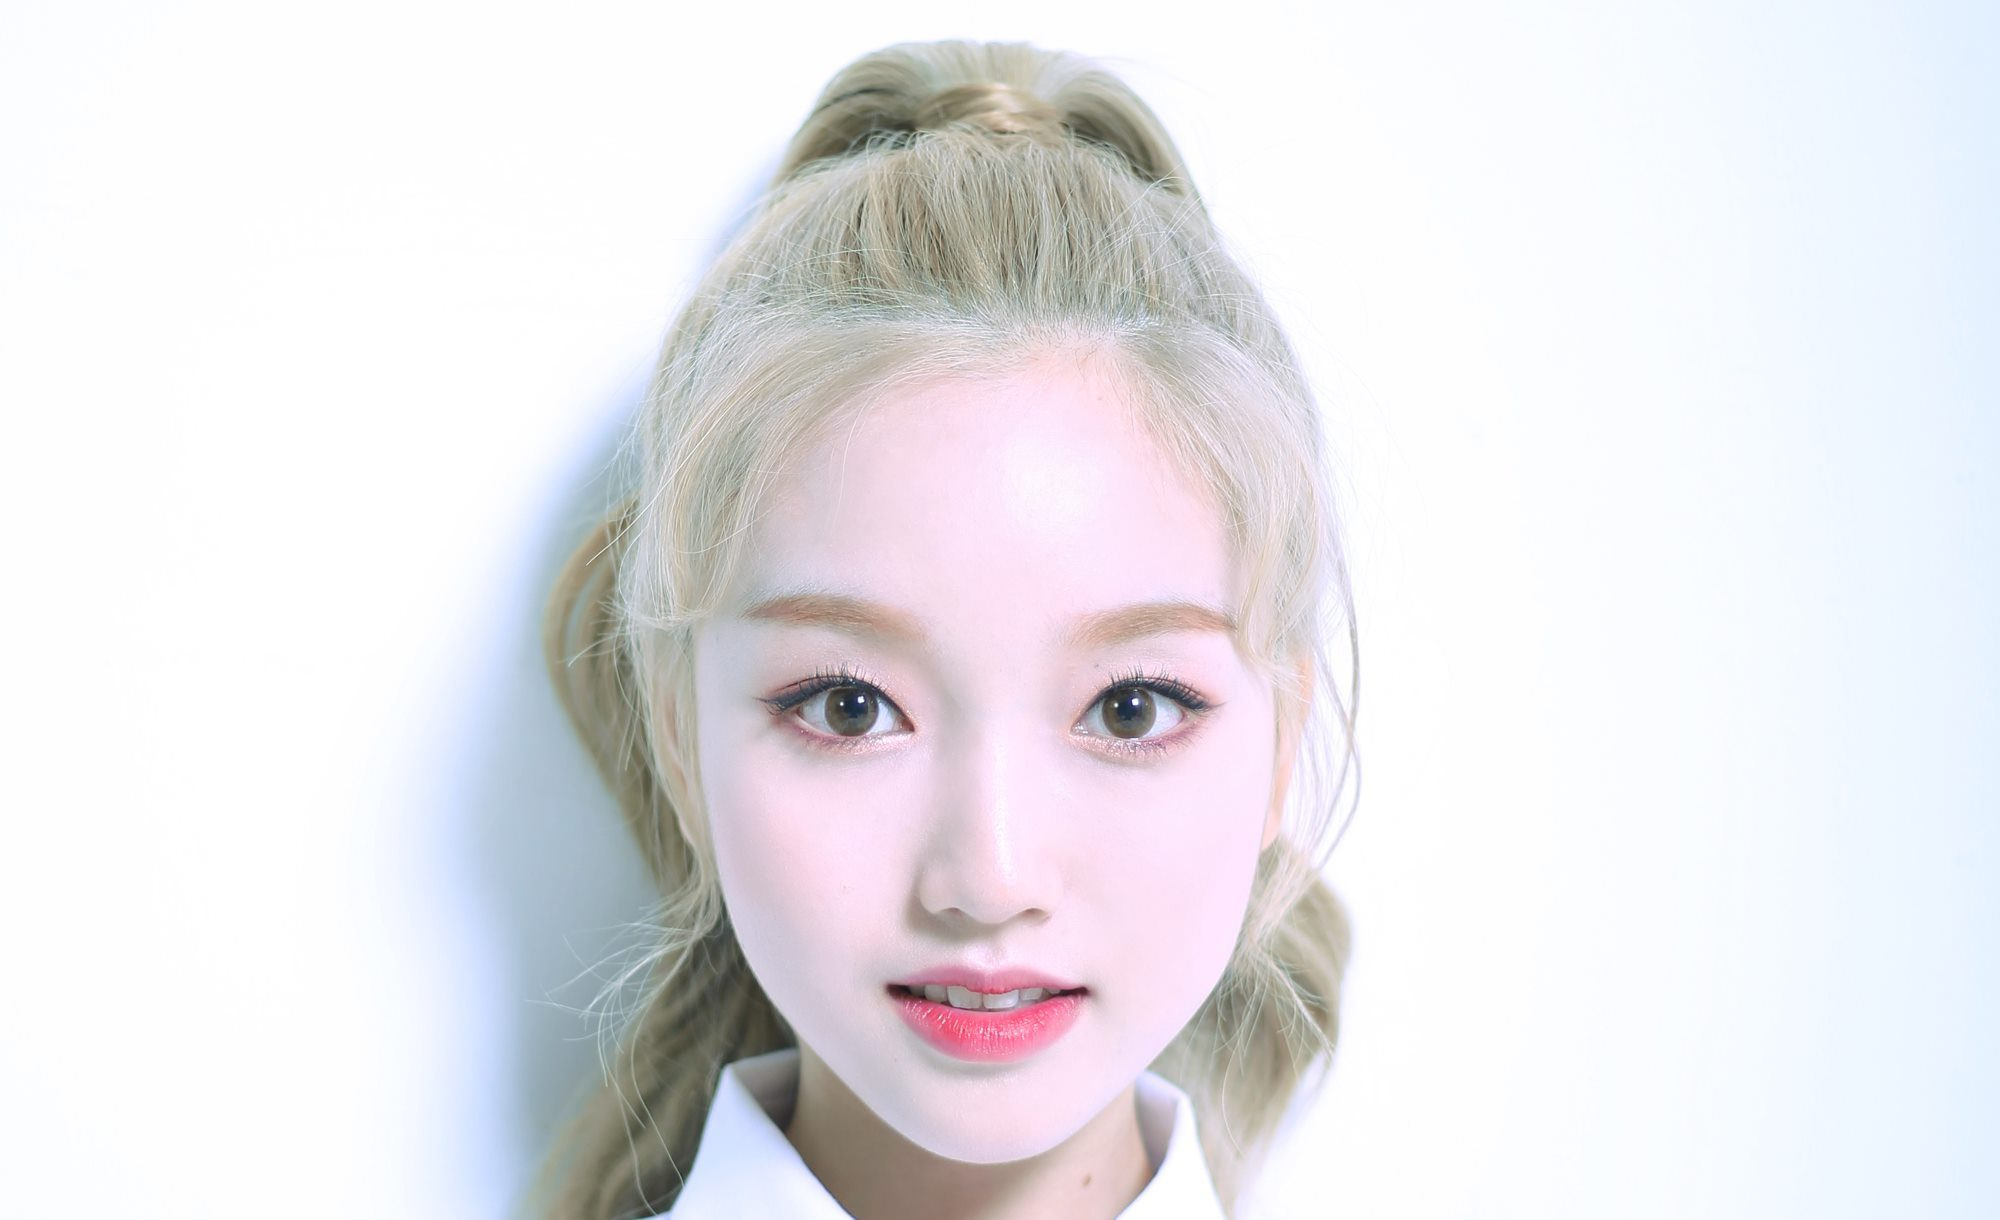 Loona Gowon